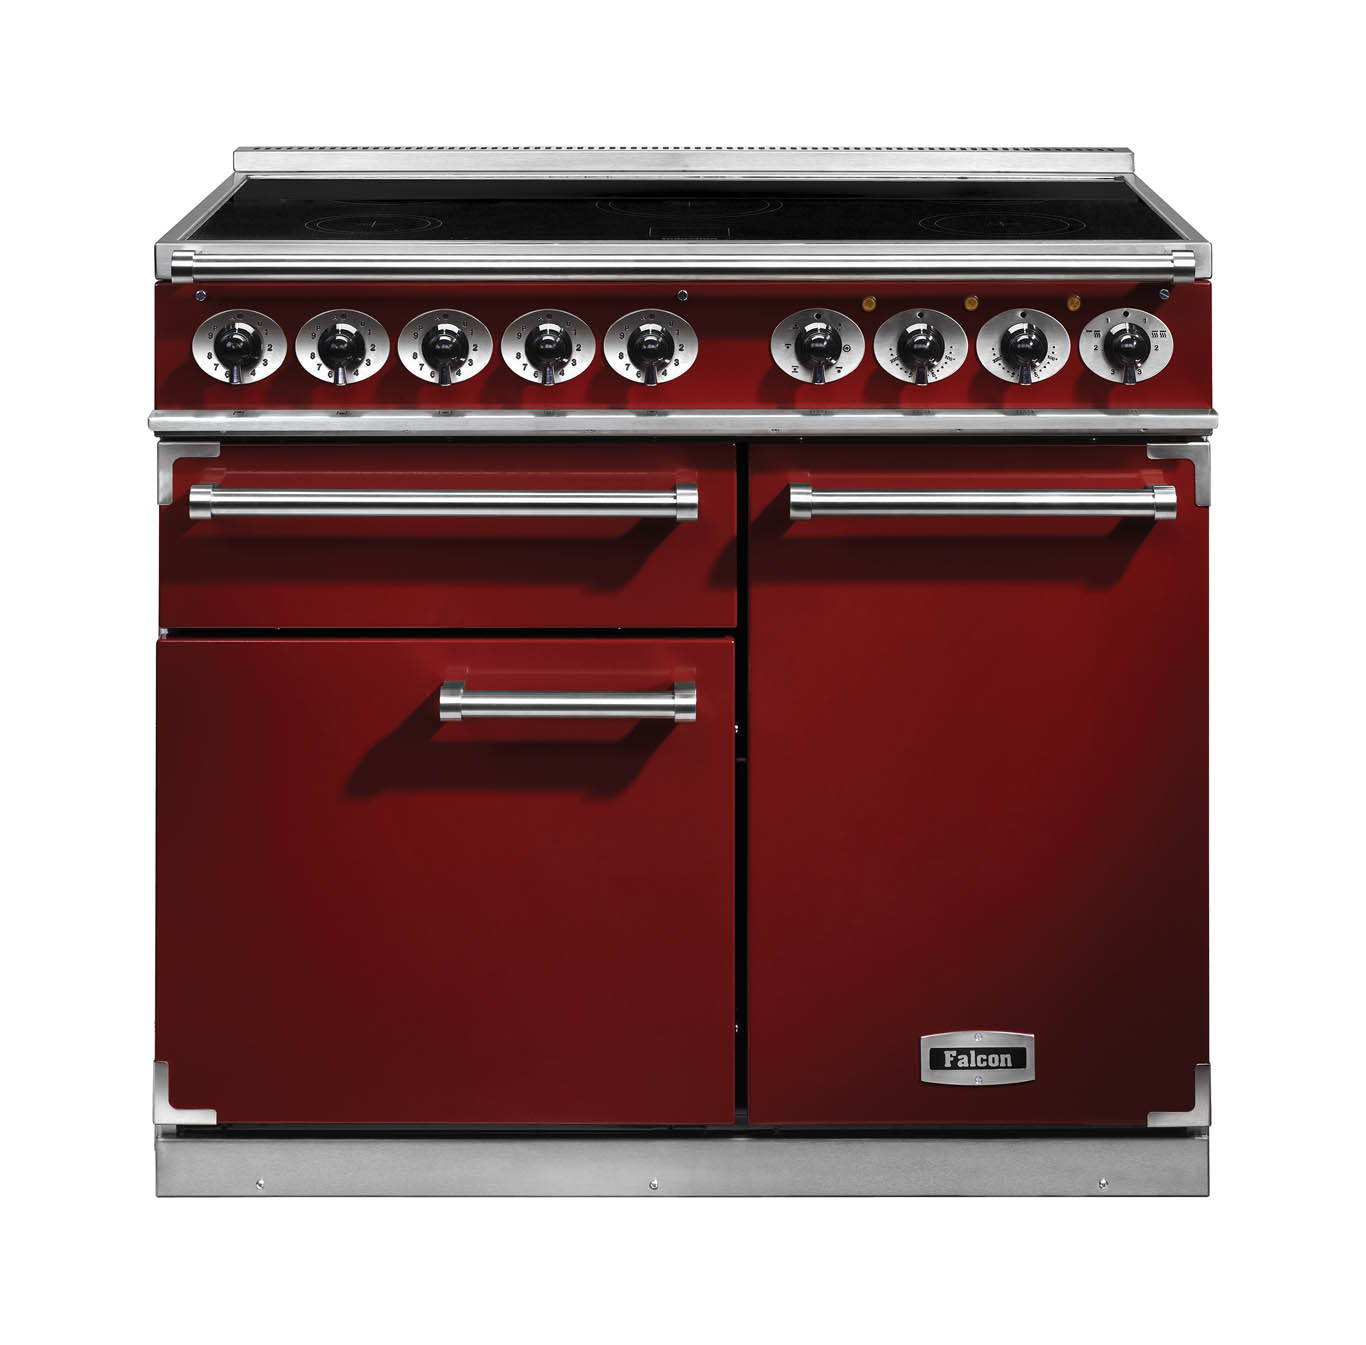 Falcon 1000 Deluxe Induction Range Cooker Cherry Red